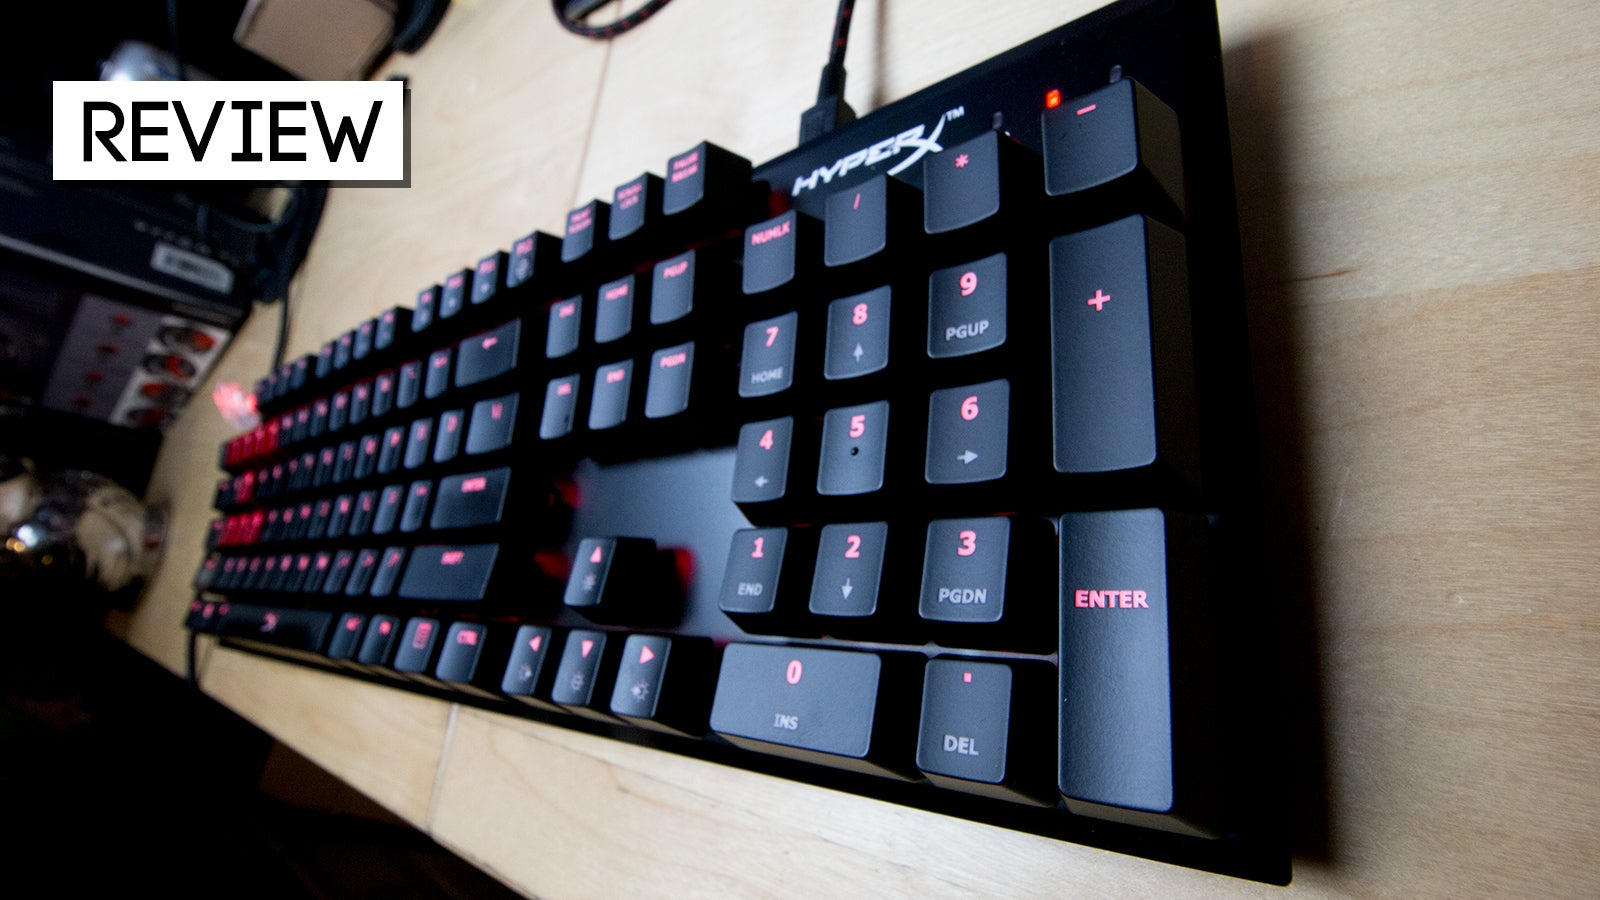 Hyperx Alloy Fps Mechanical Gaming Keyboard Review A Happy Minimum Circuit Board Images This Is The It Consists Of Steel Frame Printed Plastic Base 104 Cherry Mx Brown